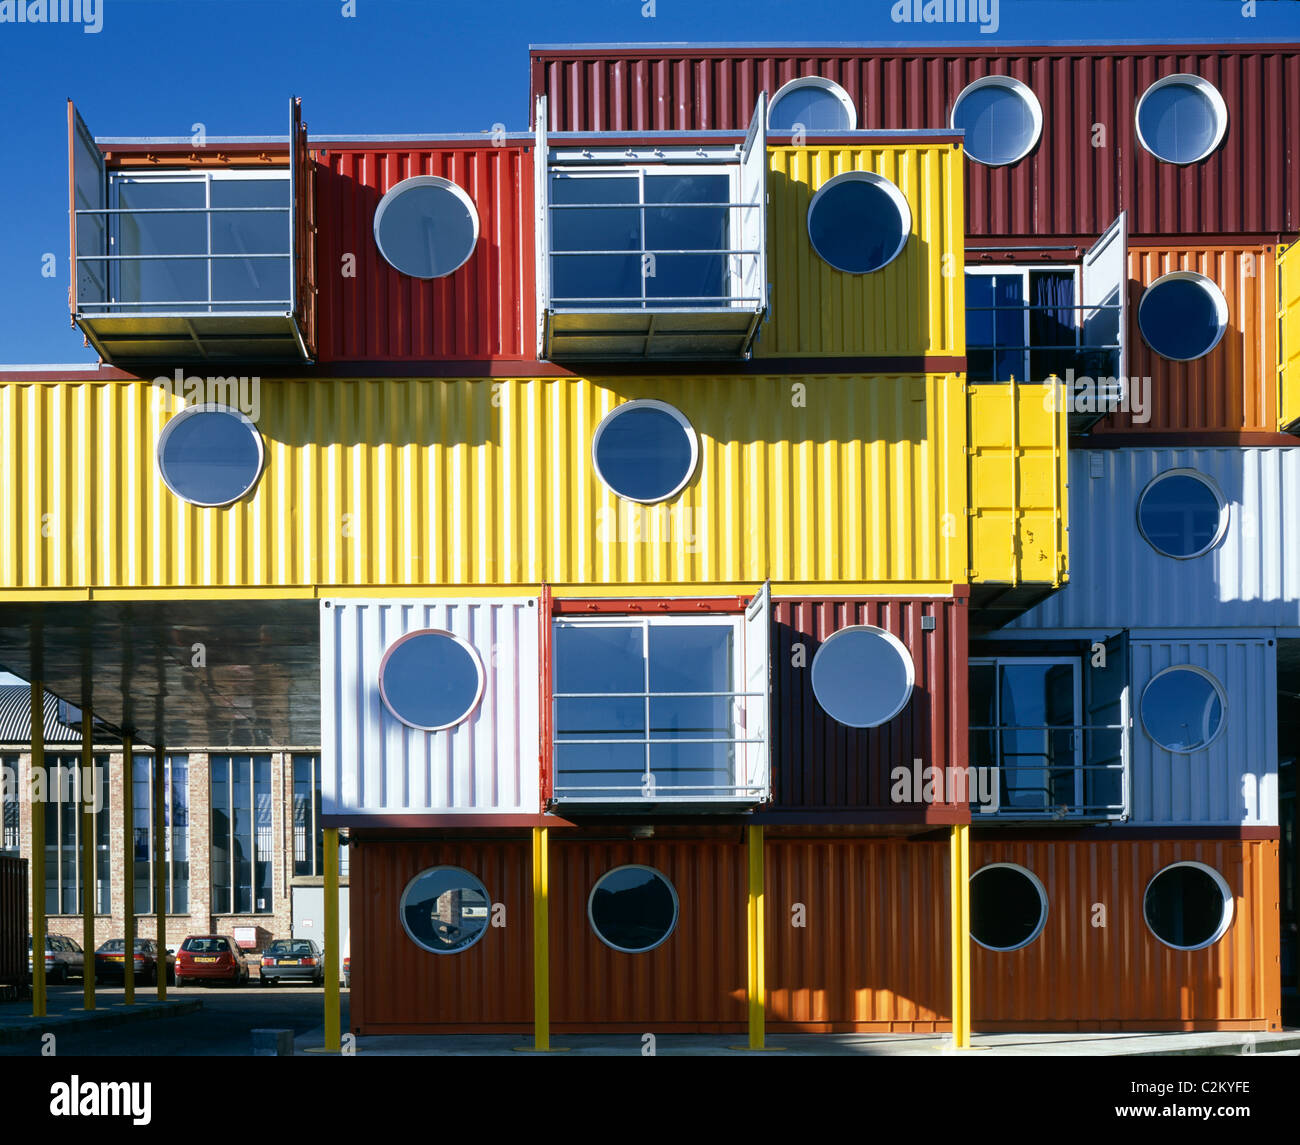 Container Haus London Shipping Container House Stock Photos Shipping Container House